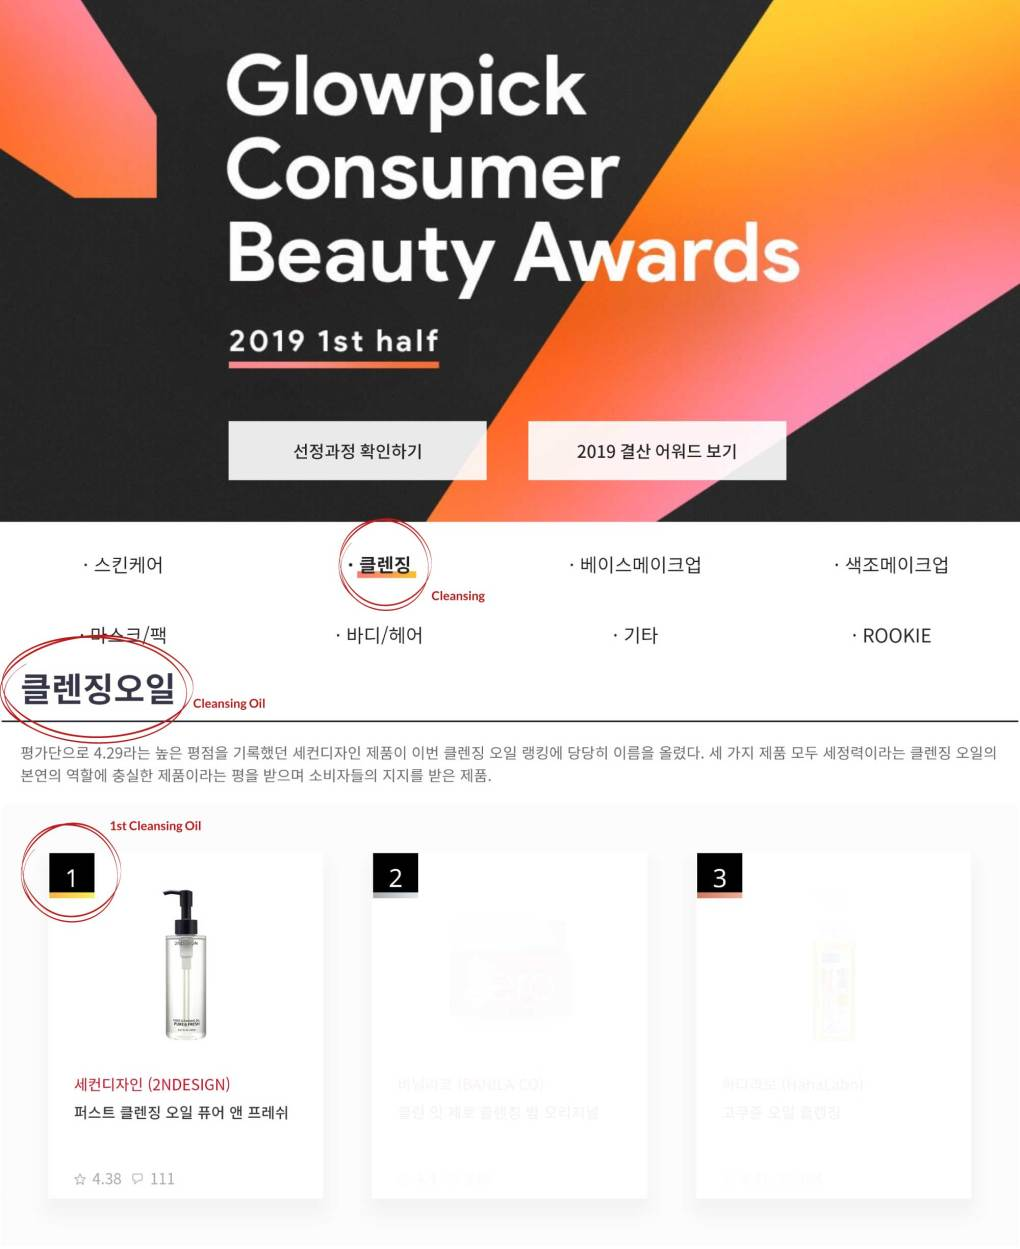 GLOWPICK CONSUMER BEAUTY AWARDS Cleansing Oil